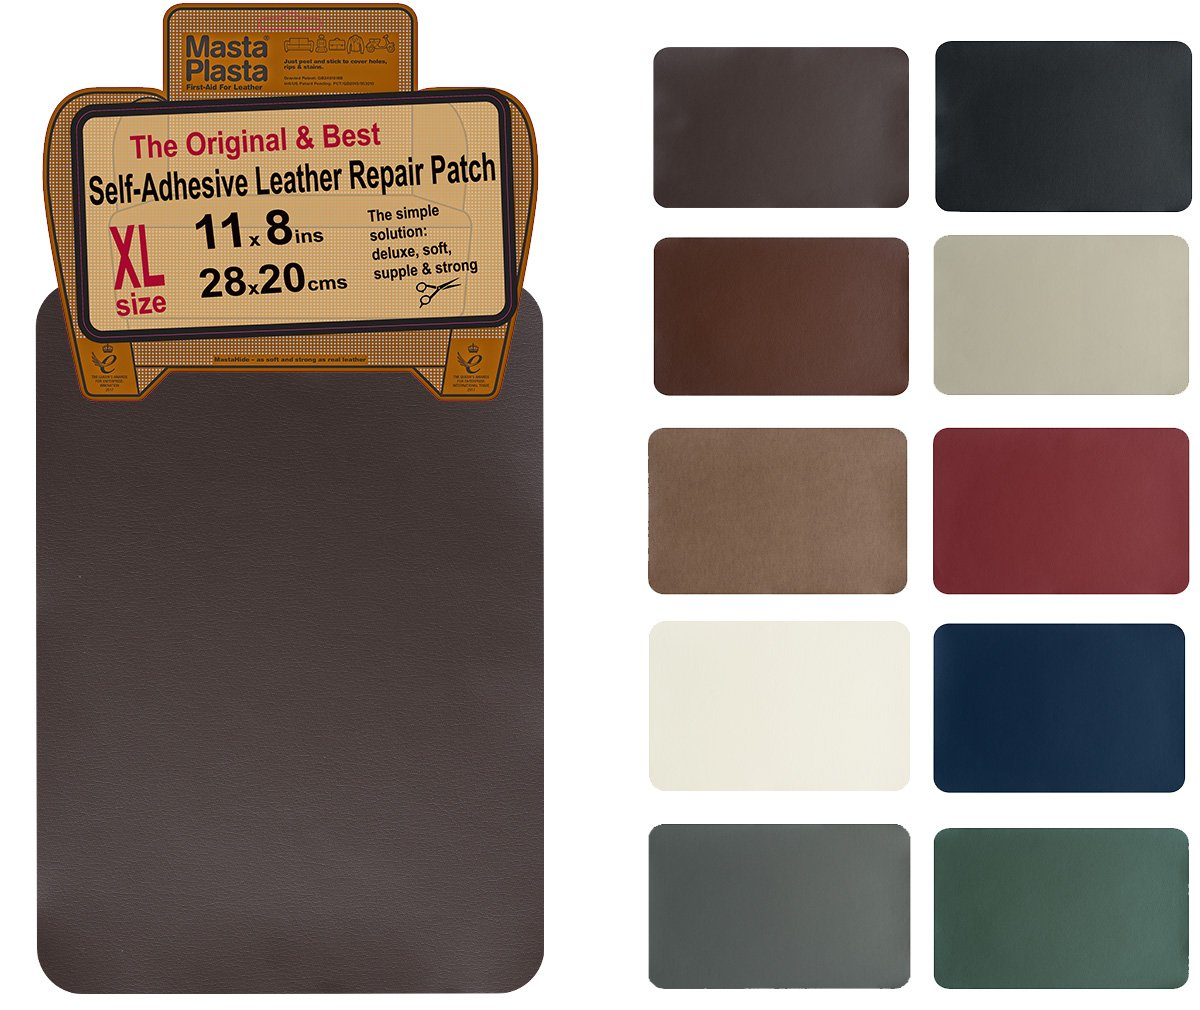 MastaPlasta, Leather Repair Patch, First-aid for Sofas Car Seats, Handbags Jackets, Plain 8-inch by 11-inch, Dark Brown